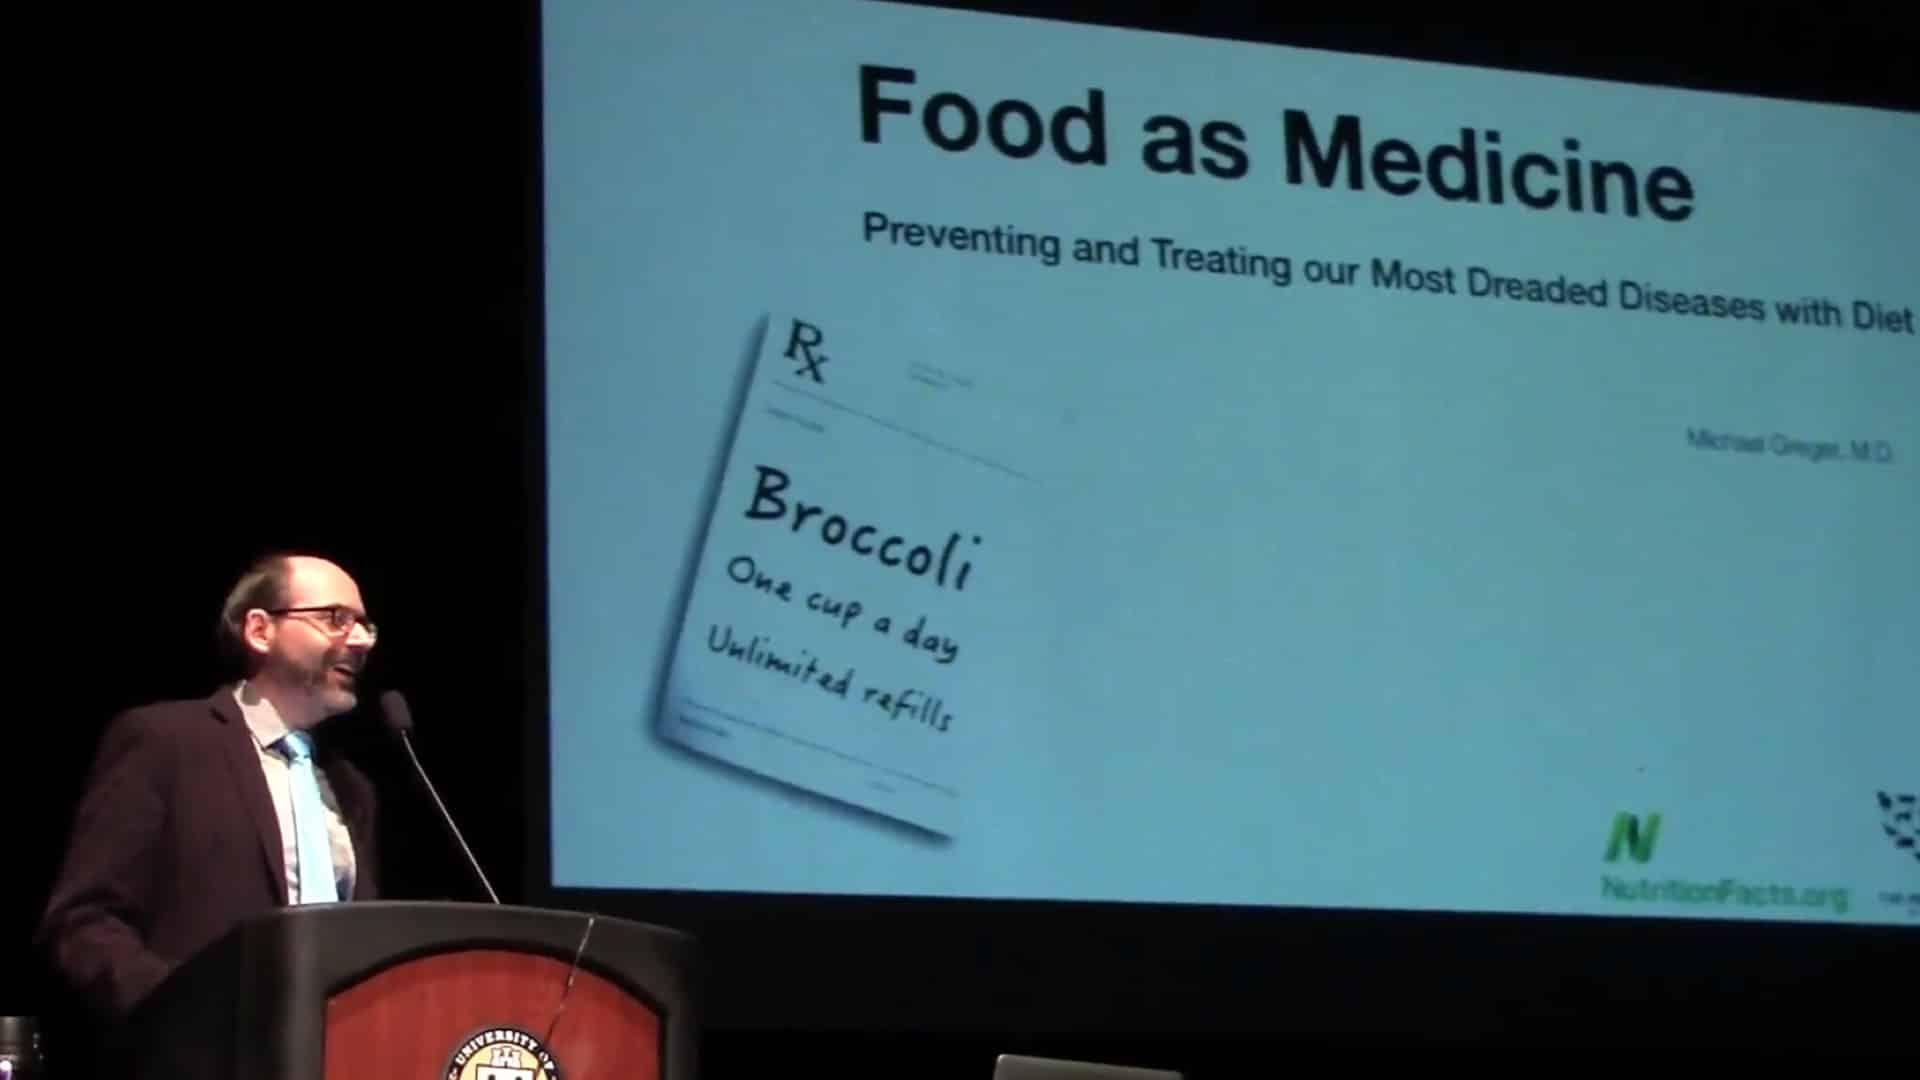 Food as Medicine: Preventing & Treating the Most Dreaded